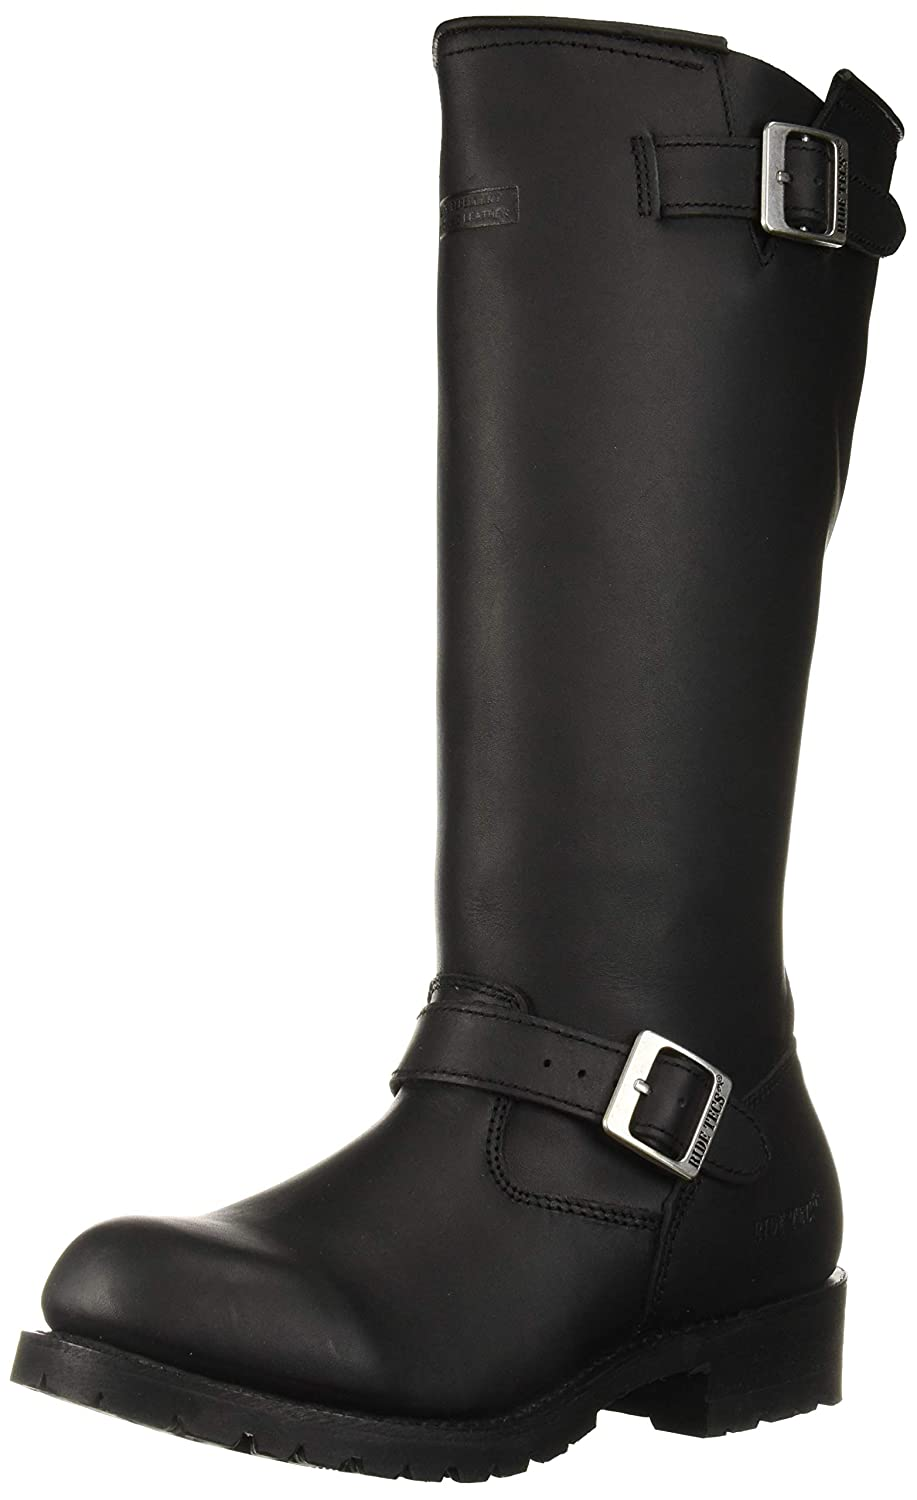 Steampunk Boots & Shoes, Heels & Flats RIDETECS Mens 16 Engineer Zipper Biker Boot Black $146.95 AT vintagedancer.com